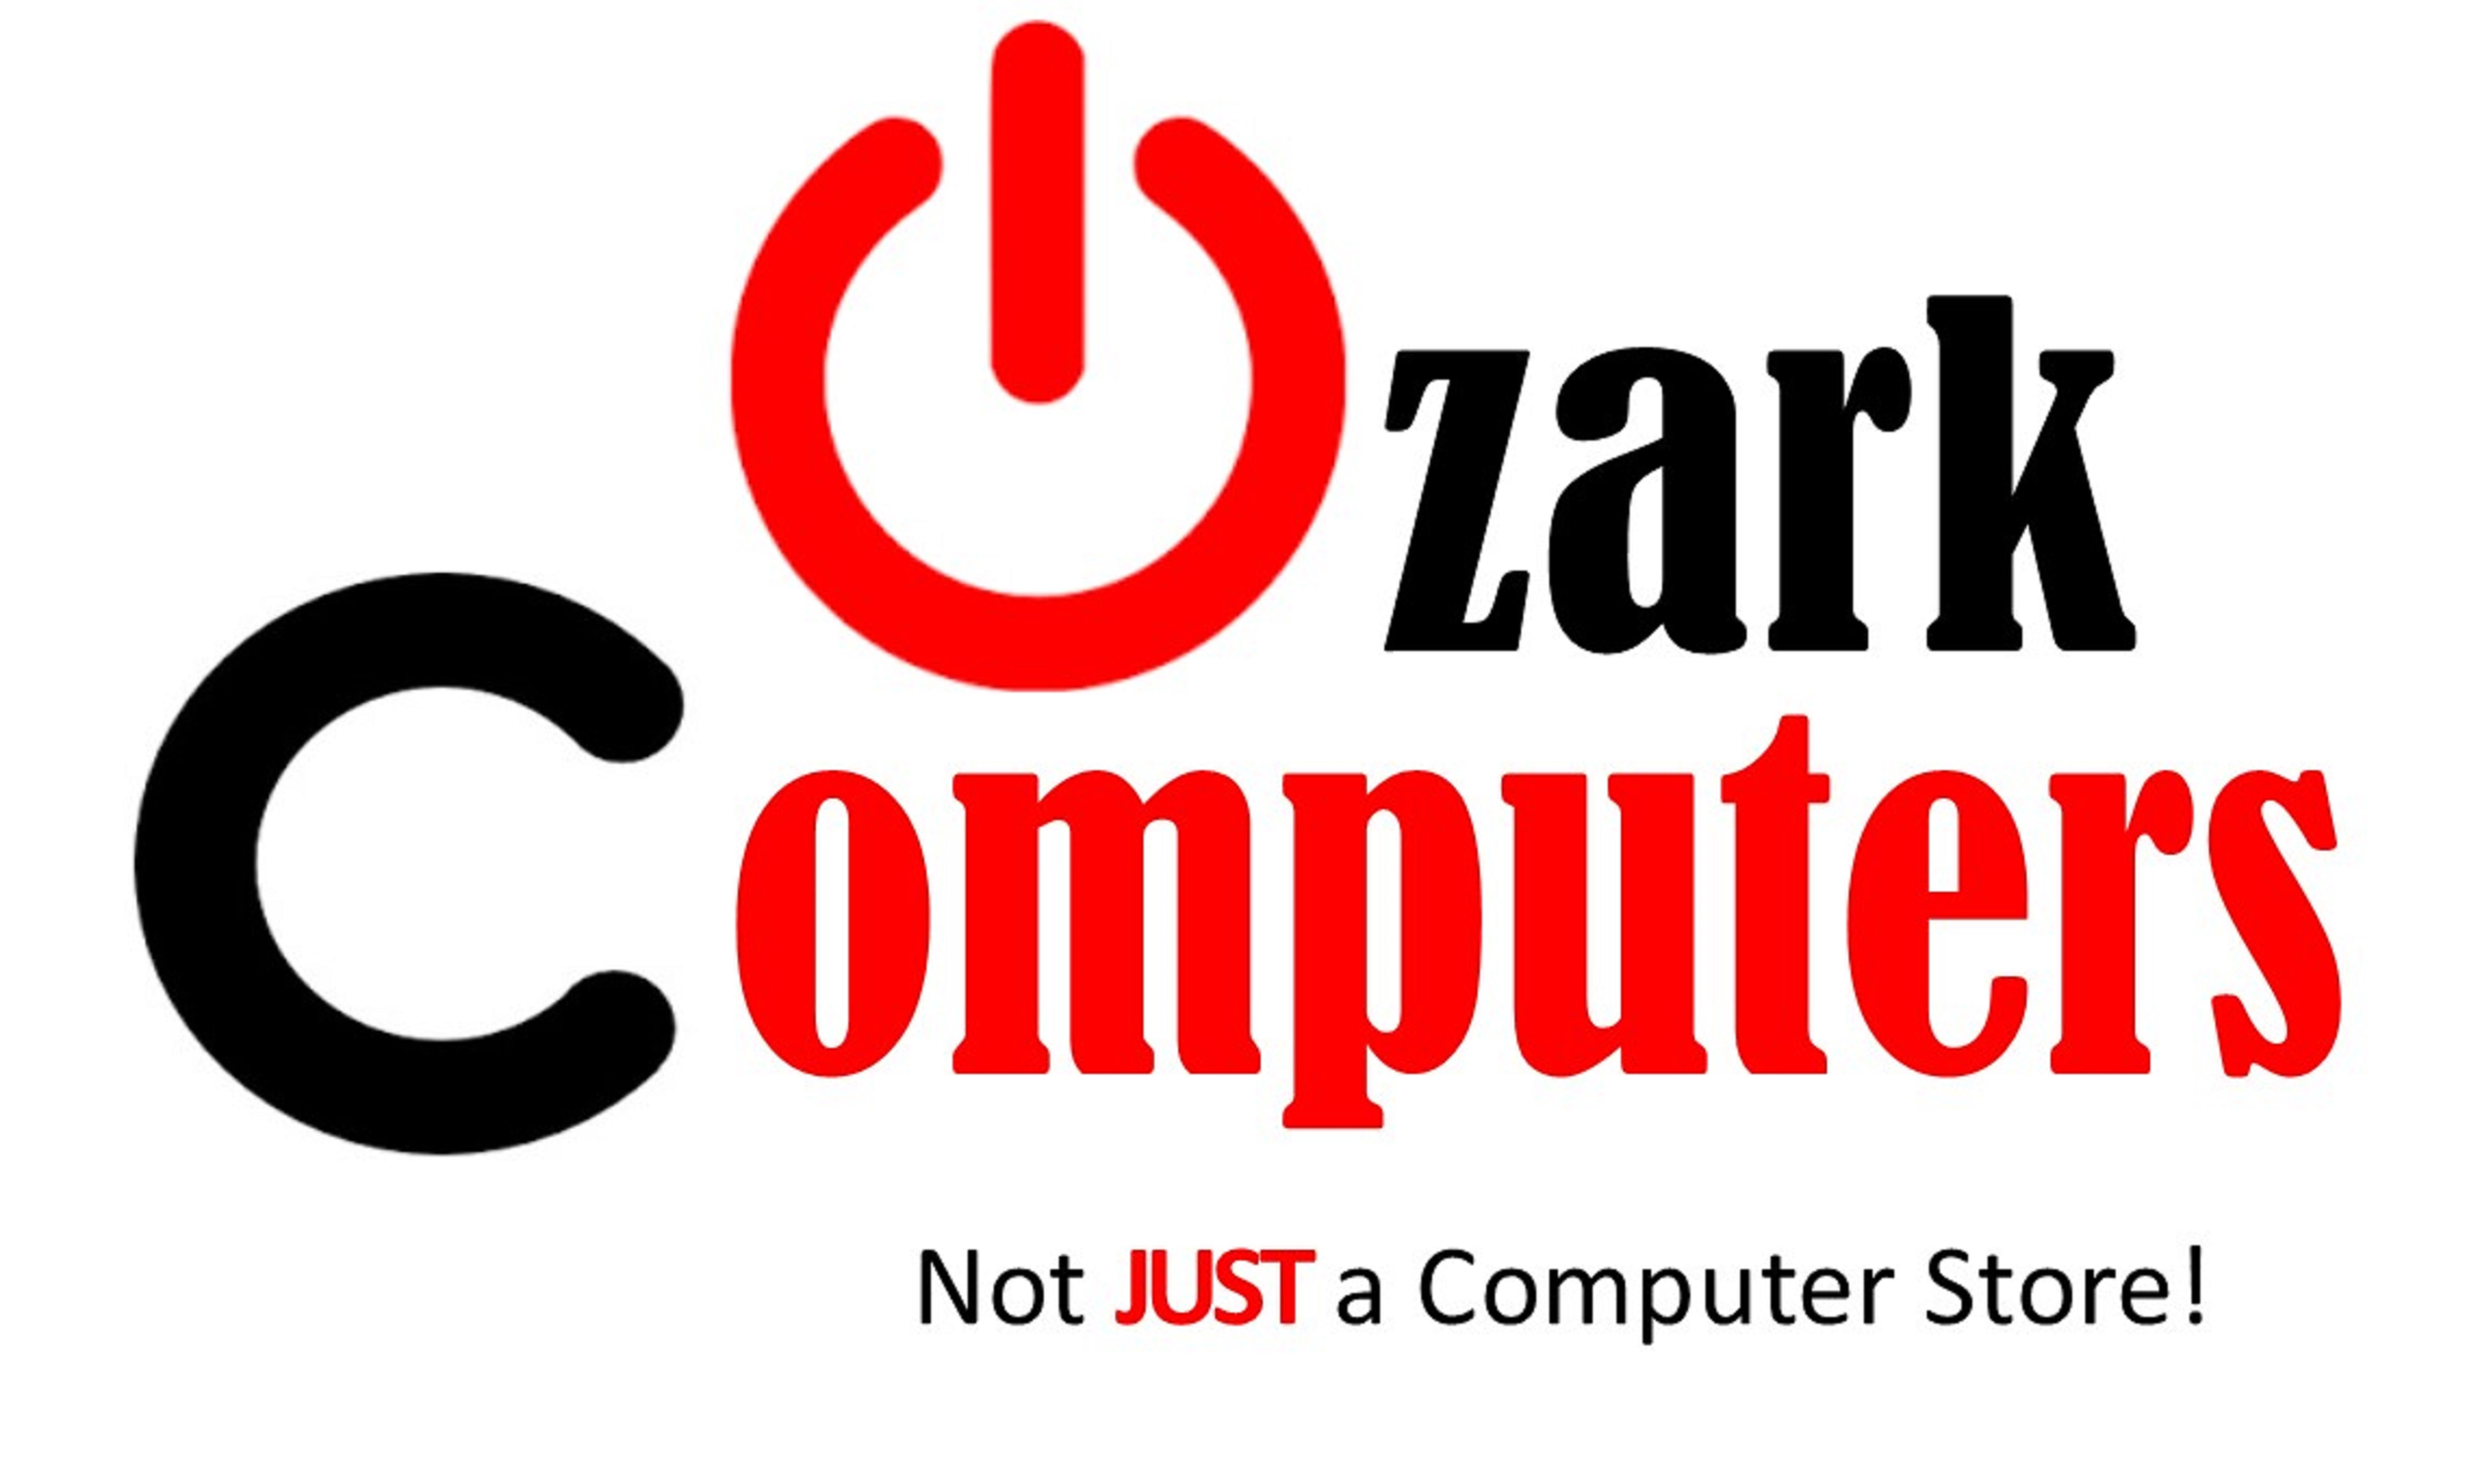 Ozark Computers in Gainesville, MO - DISH Authorized Retailer